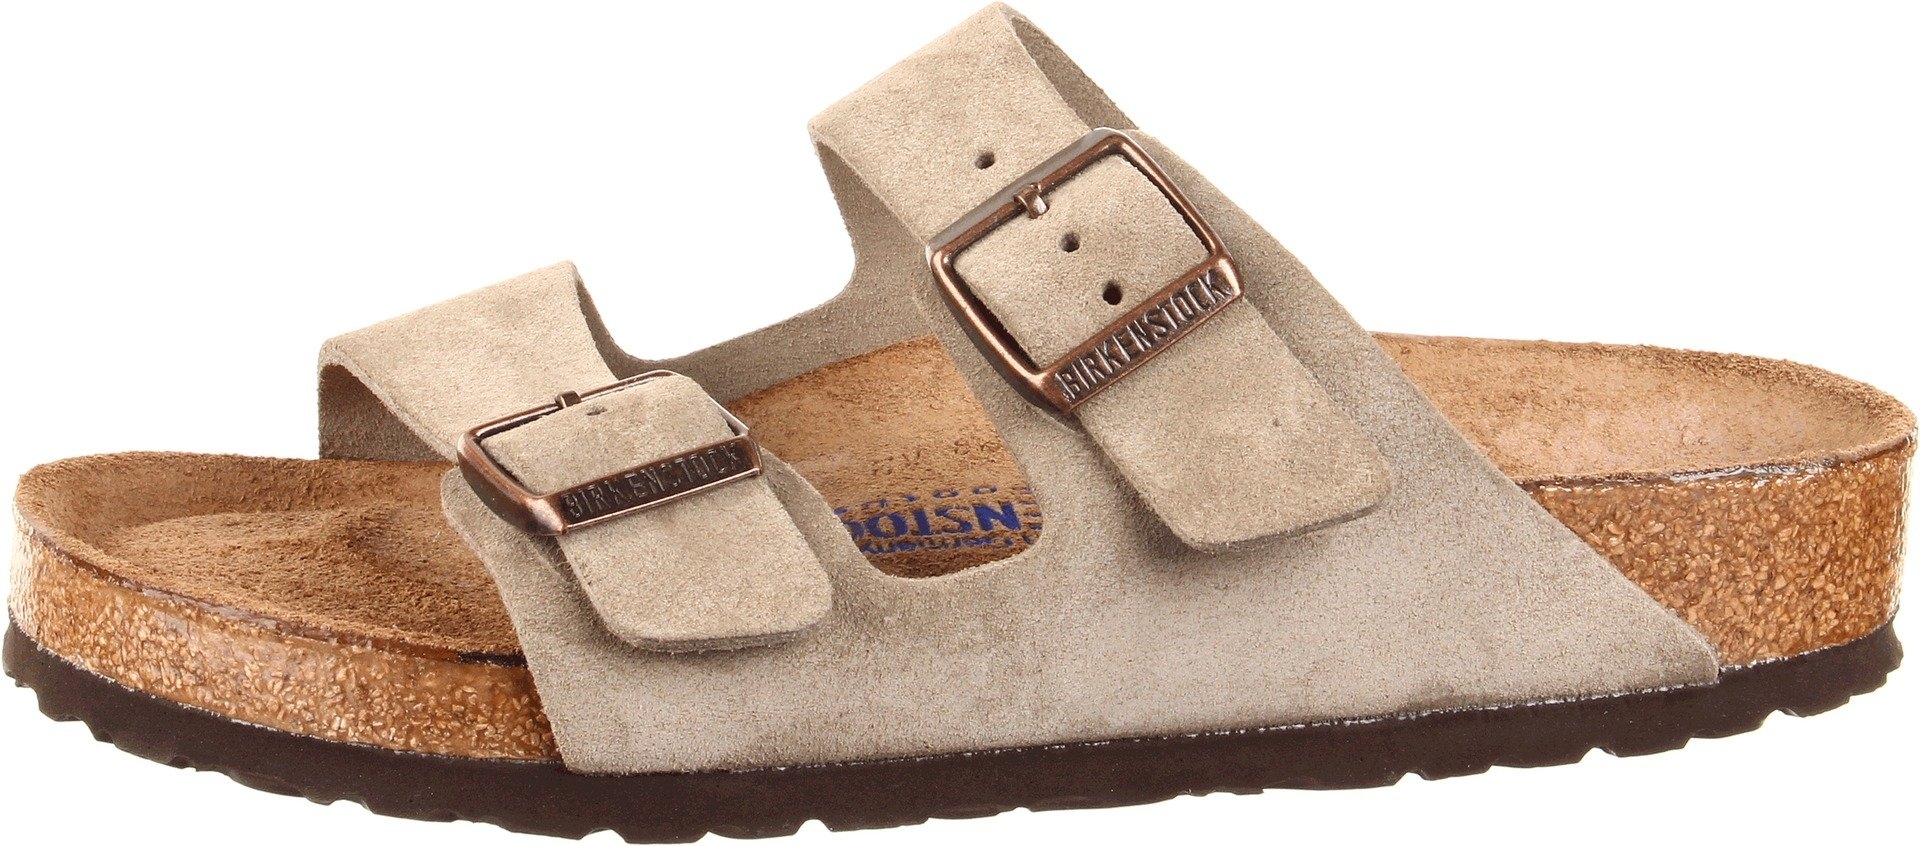 Birkenstock Unisex Arizona Taupe Suede Soft Foot Bed Sandals - 38 M EU / 7-7.5 B(M) US by Birkenstock (Image #5)